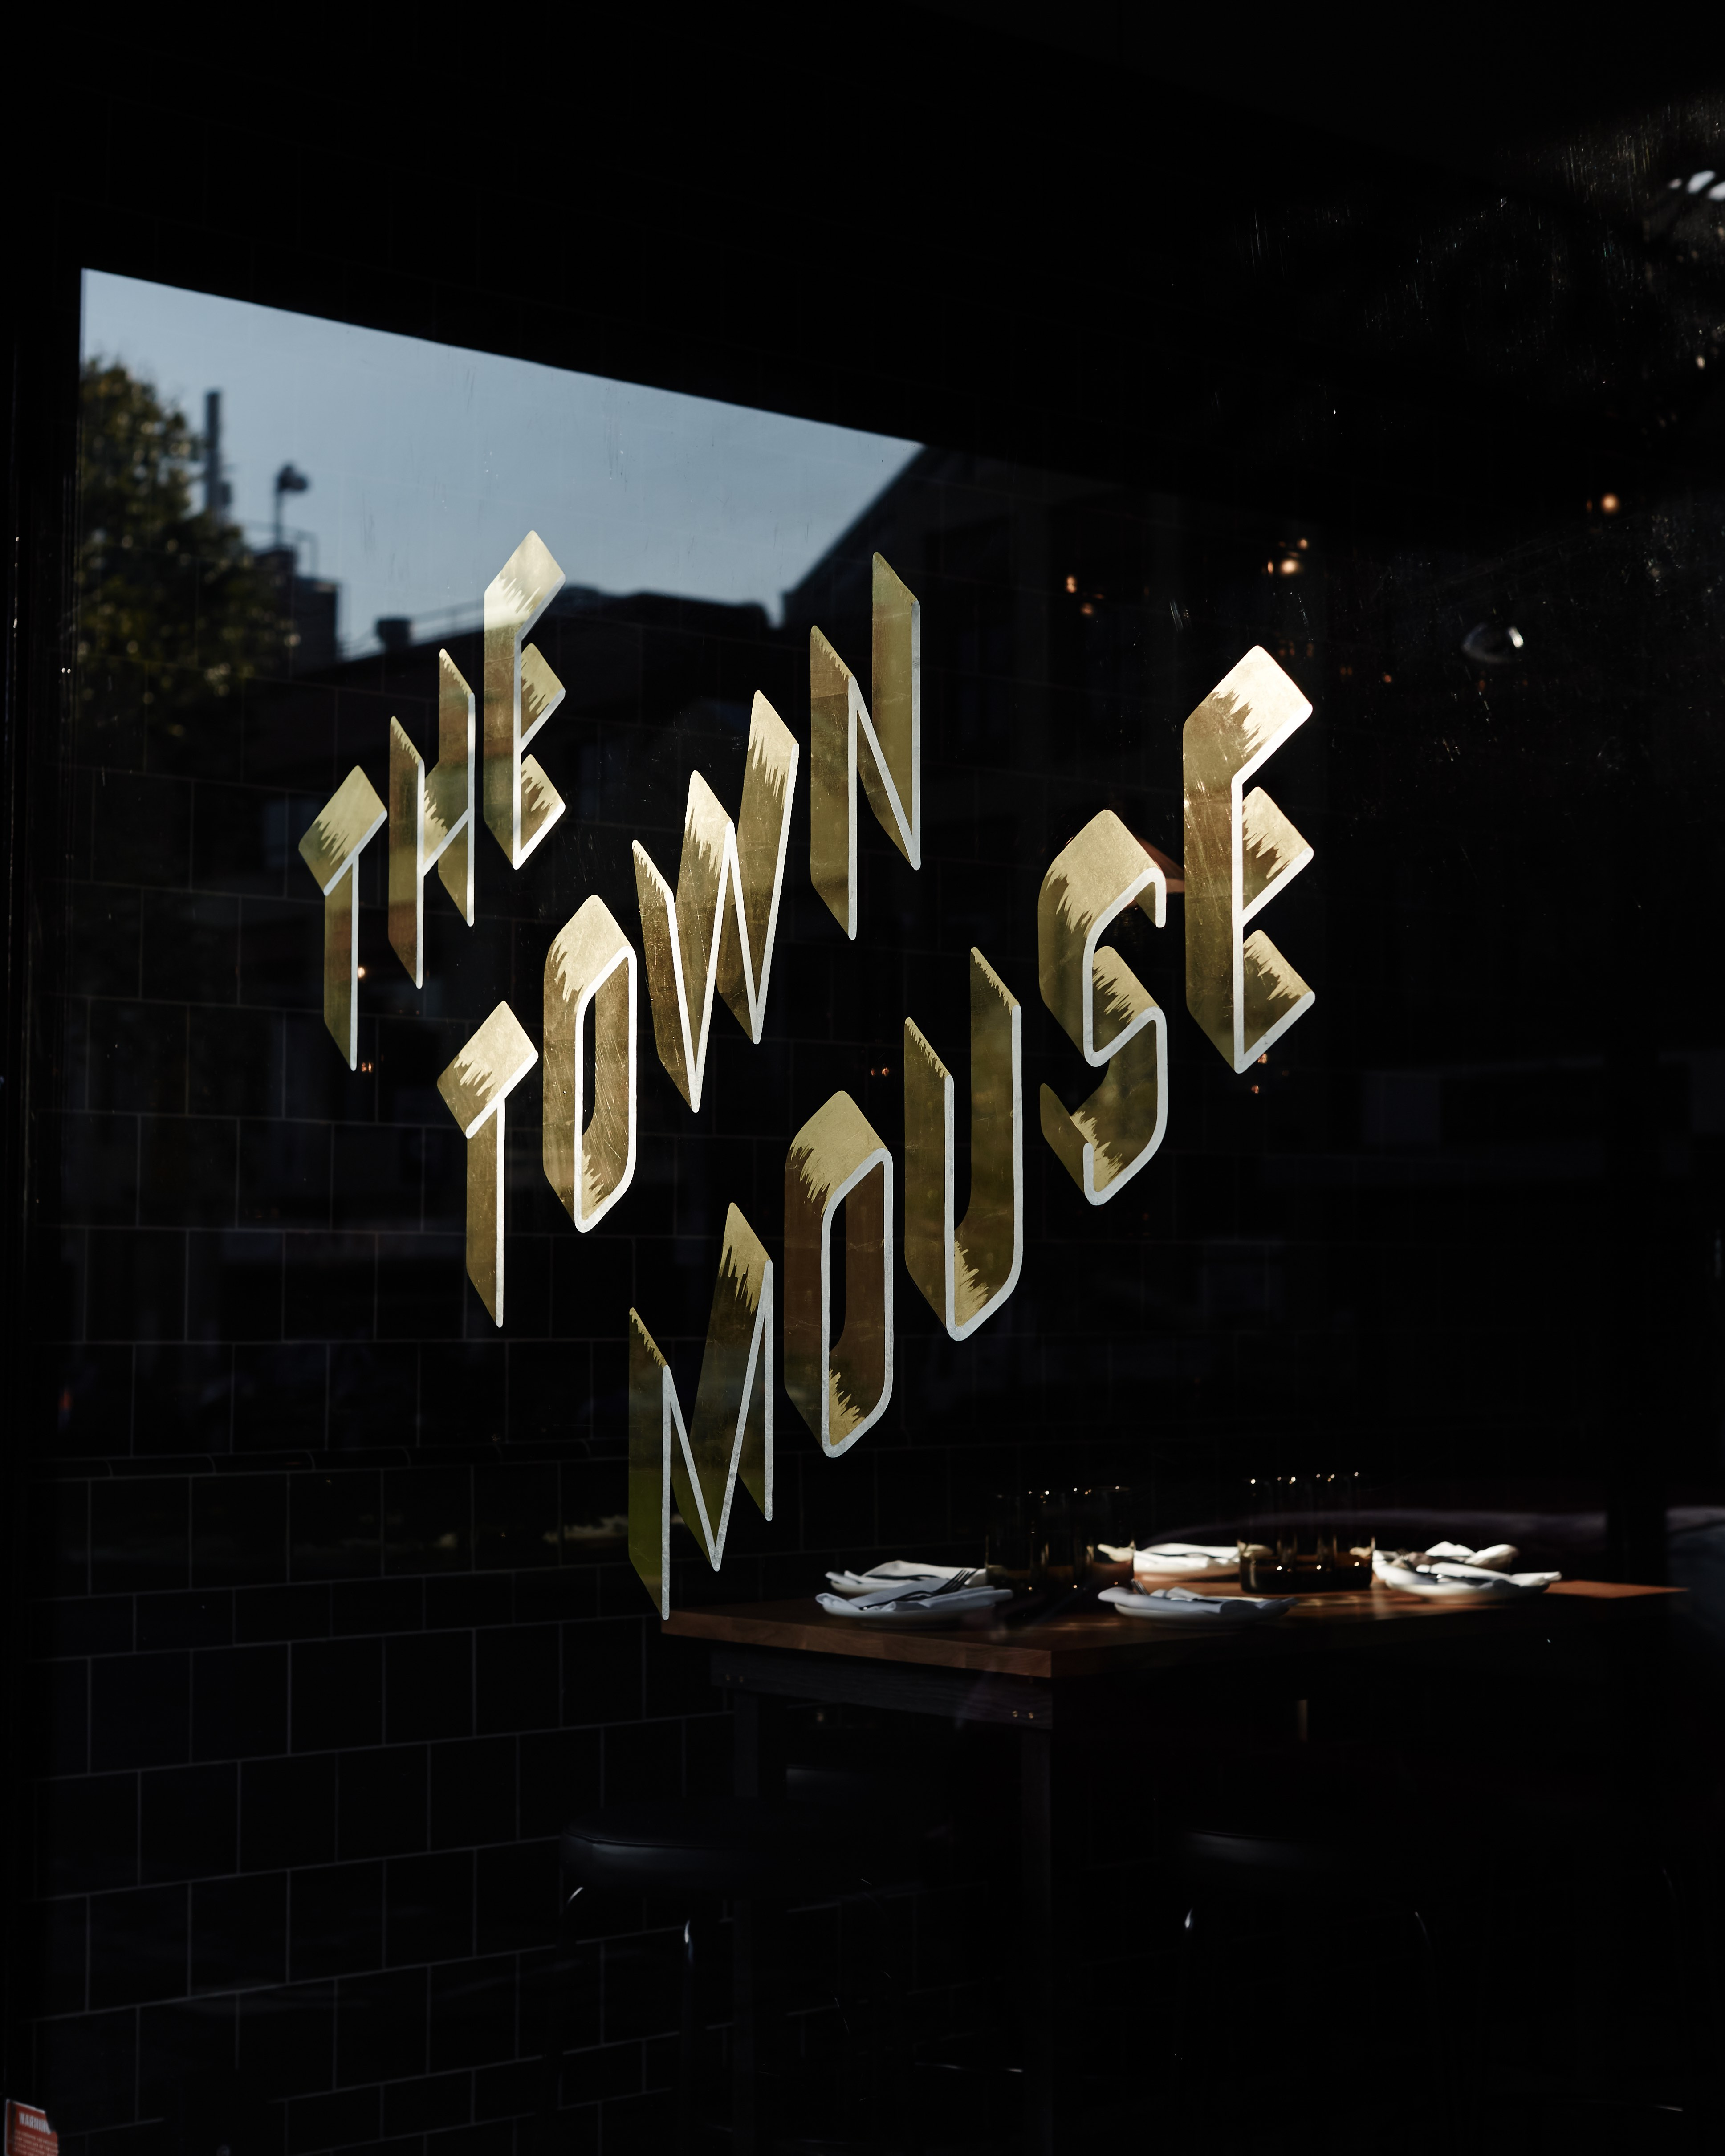 The Town Mouse